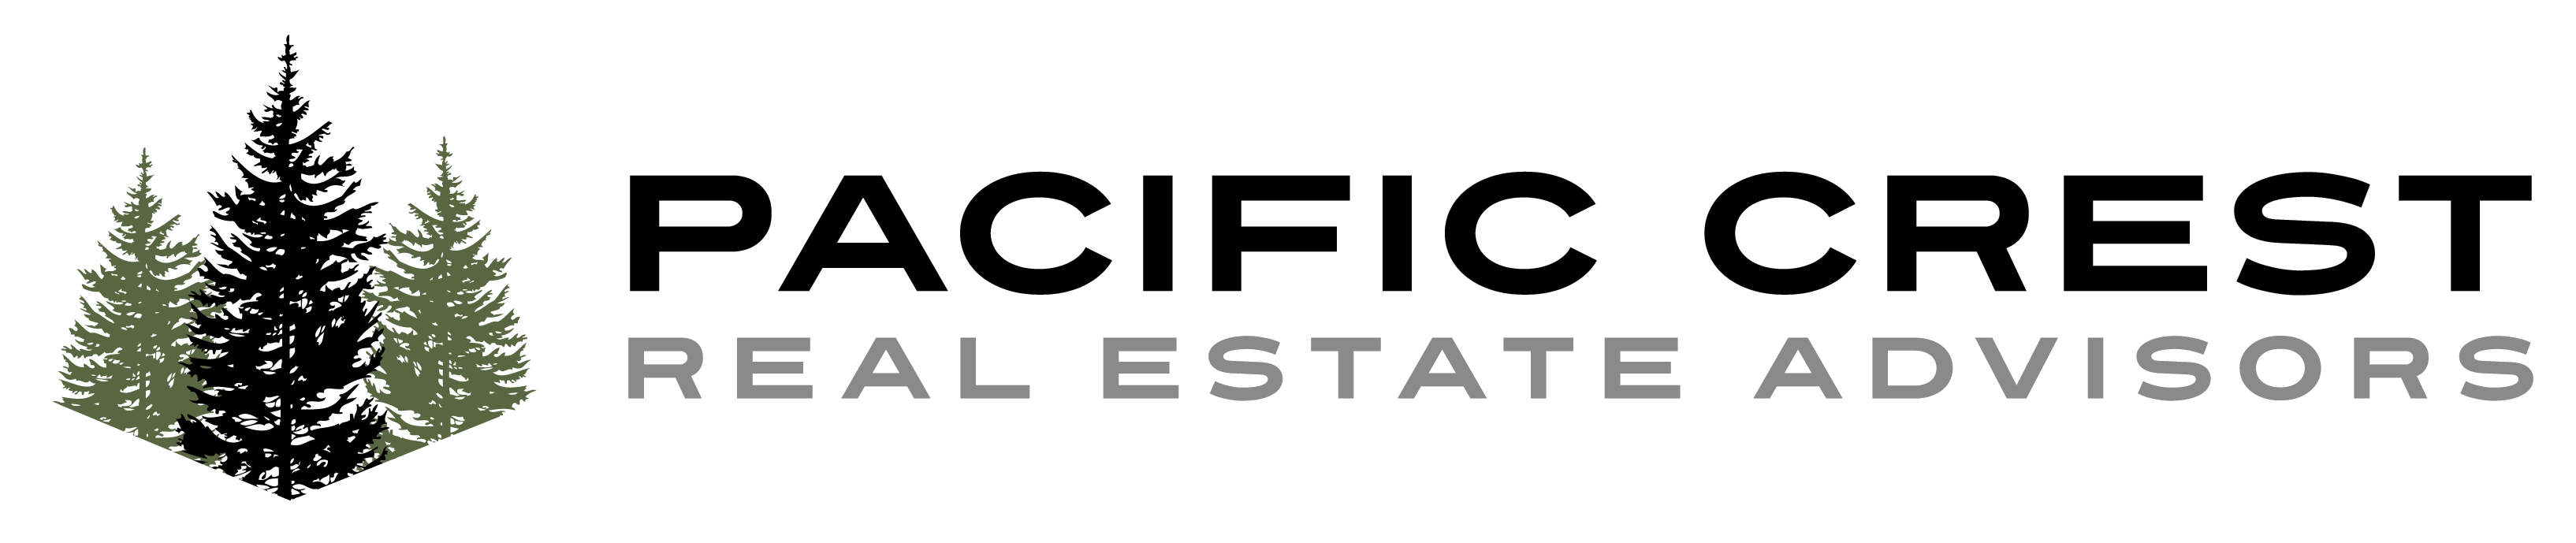 Pacific Crest Real Estate Advisors